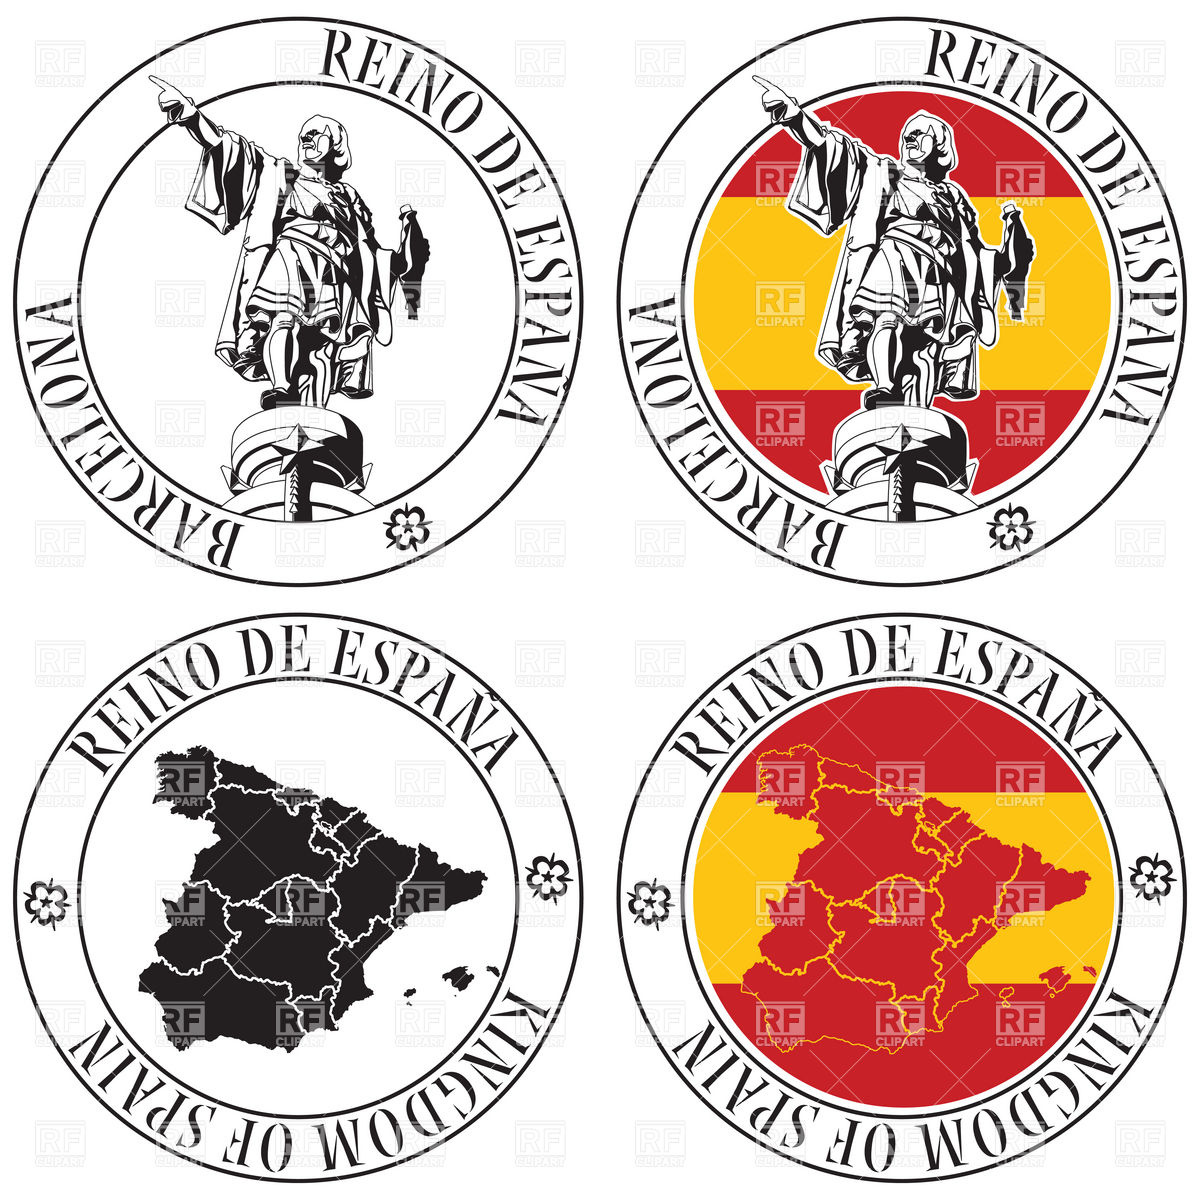 1200x1200 Travel Stamps Set Barcelona, Catalonia And Spain Theme Royalty